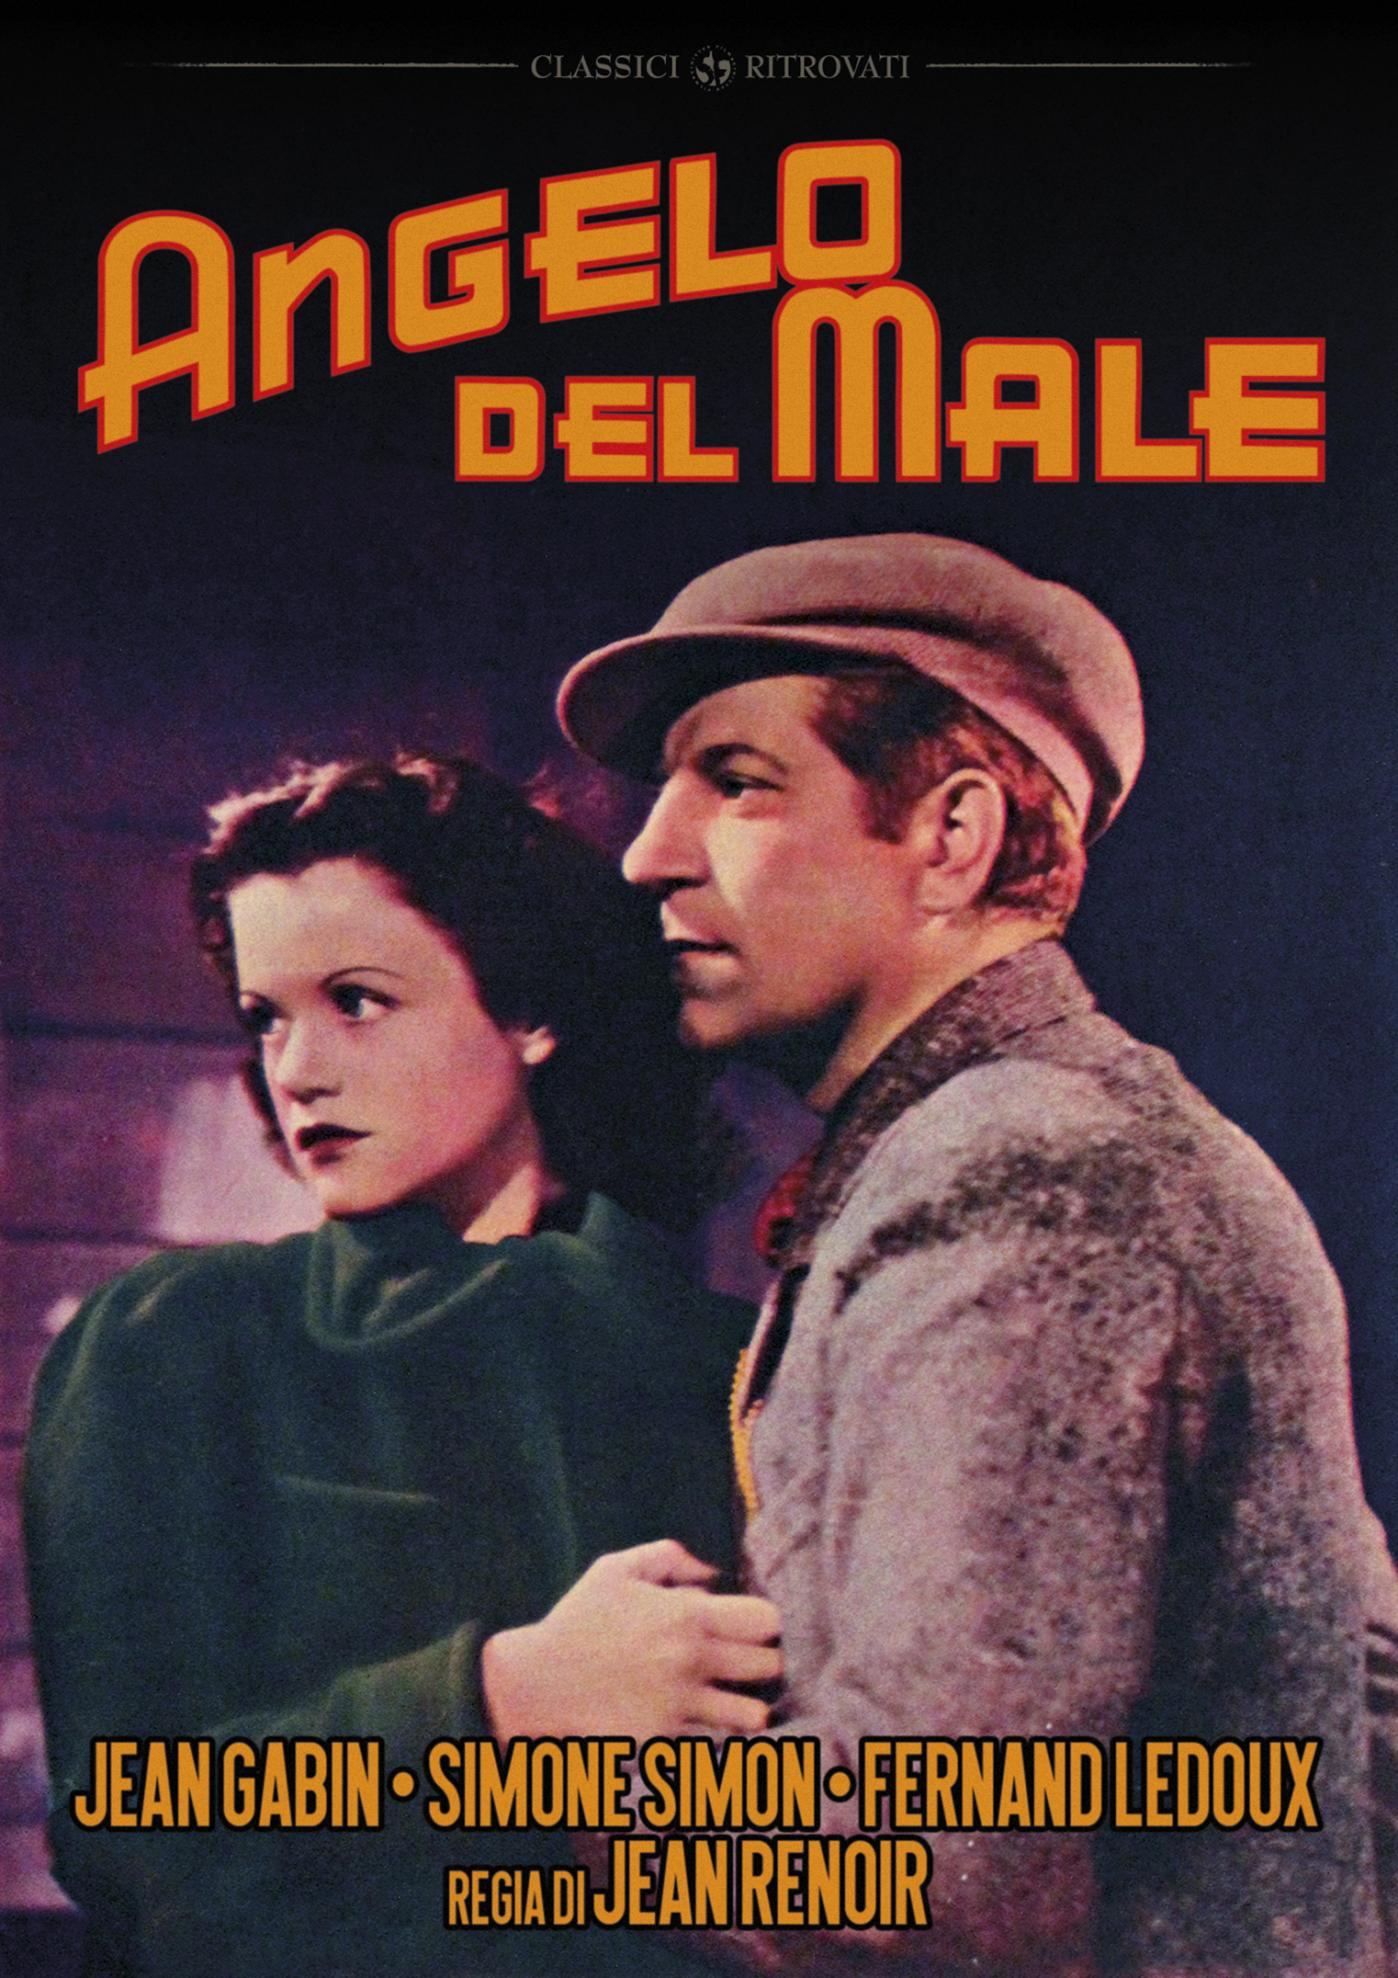 ANGELO DEL MALE (DVD)